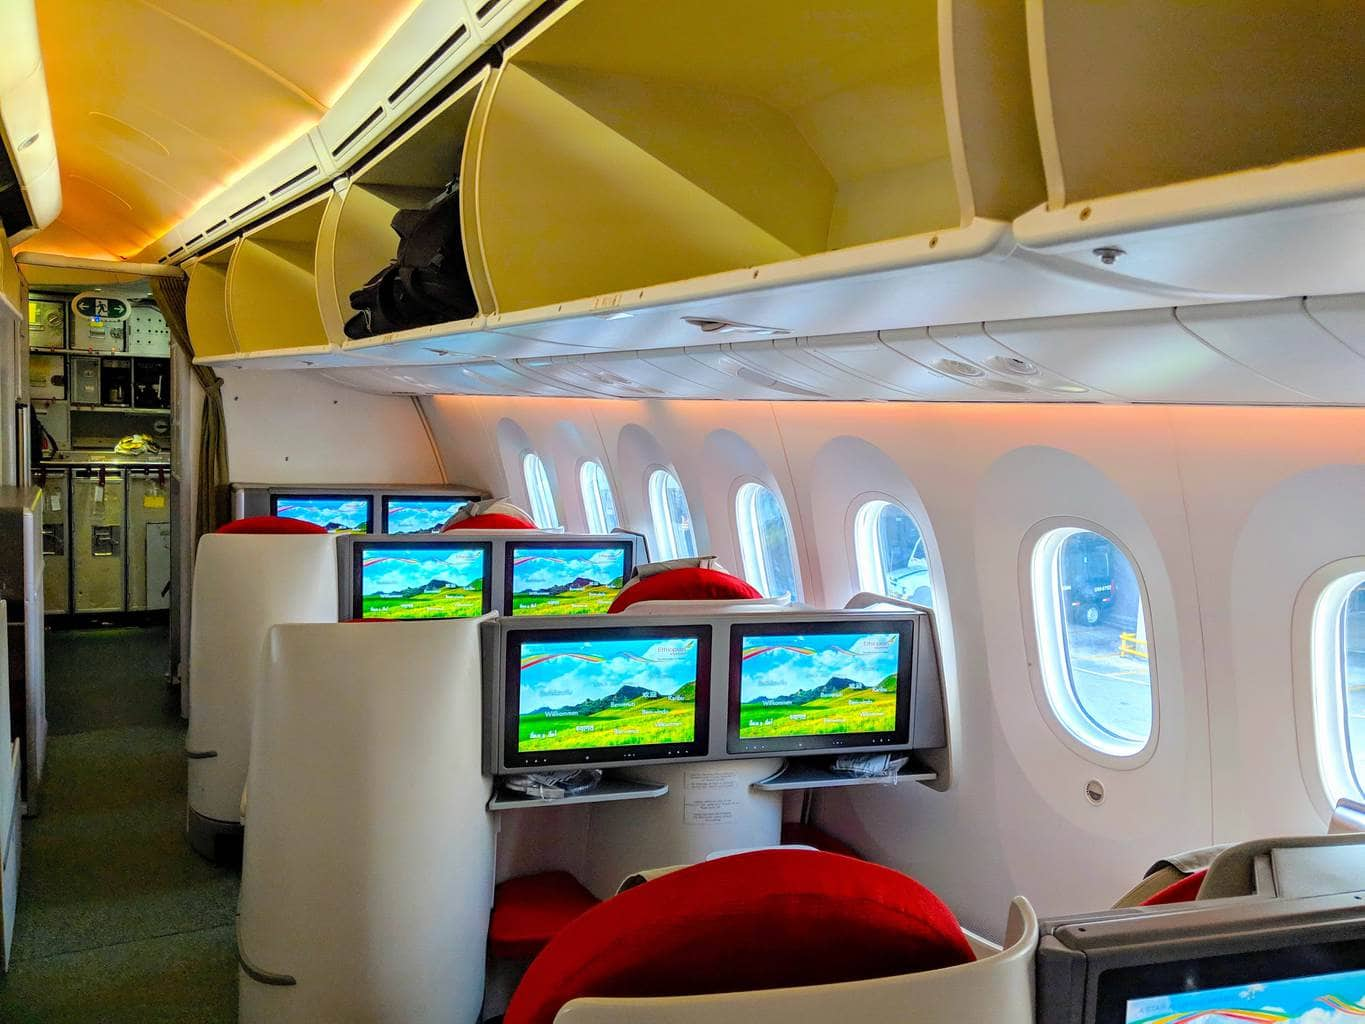 New Ethiopian Airlines Boeing 787 cabin and tvs